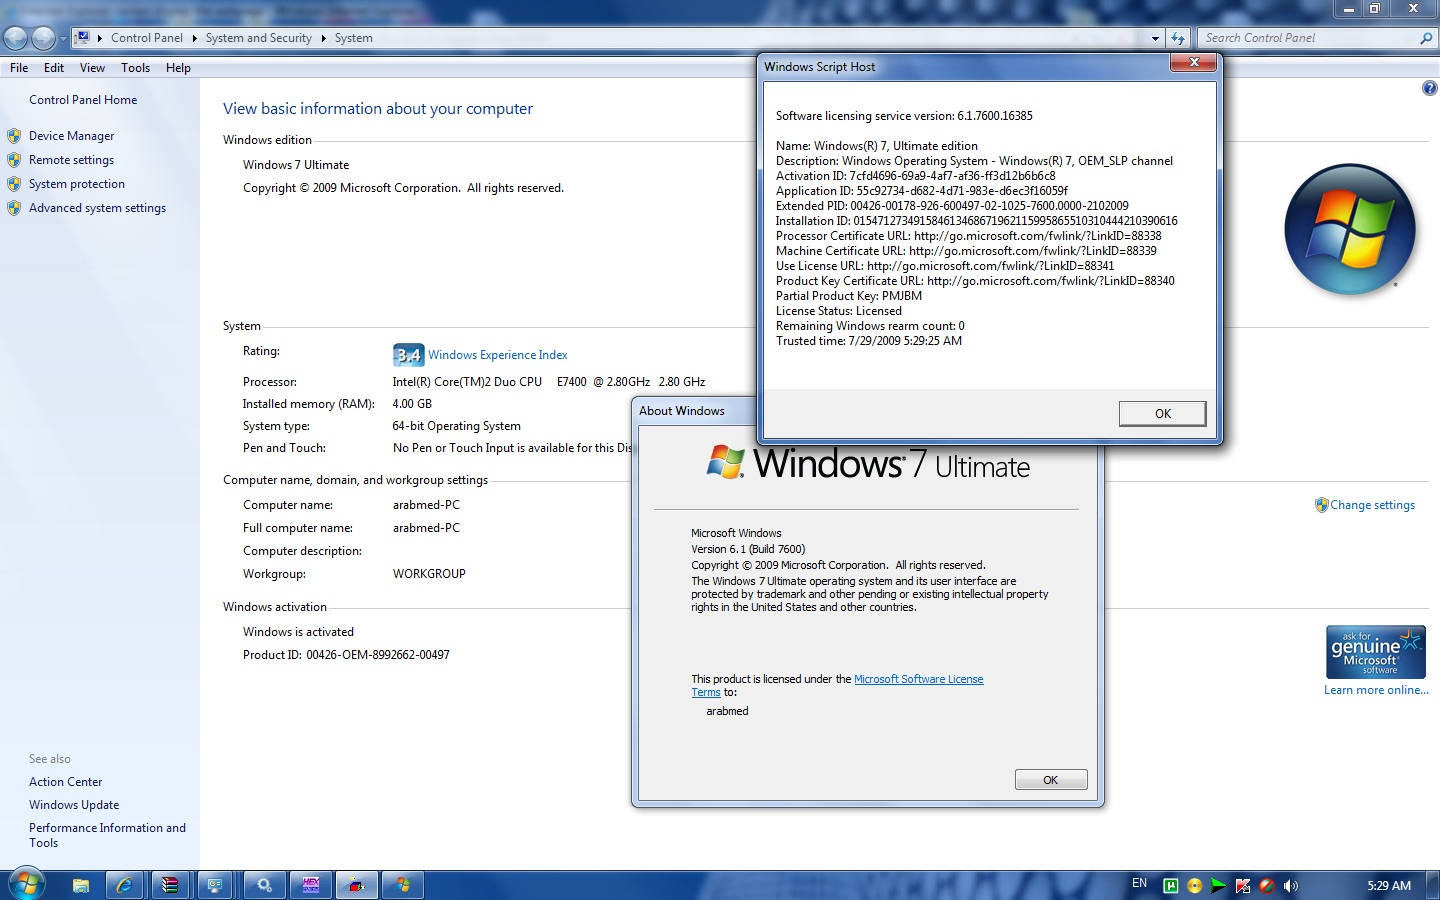 Windows 7 RTM Ultimate Activated with OEM SLP Master Product Key